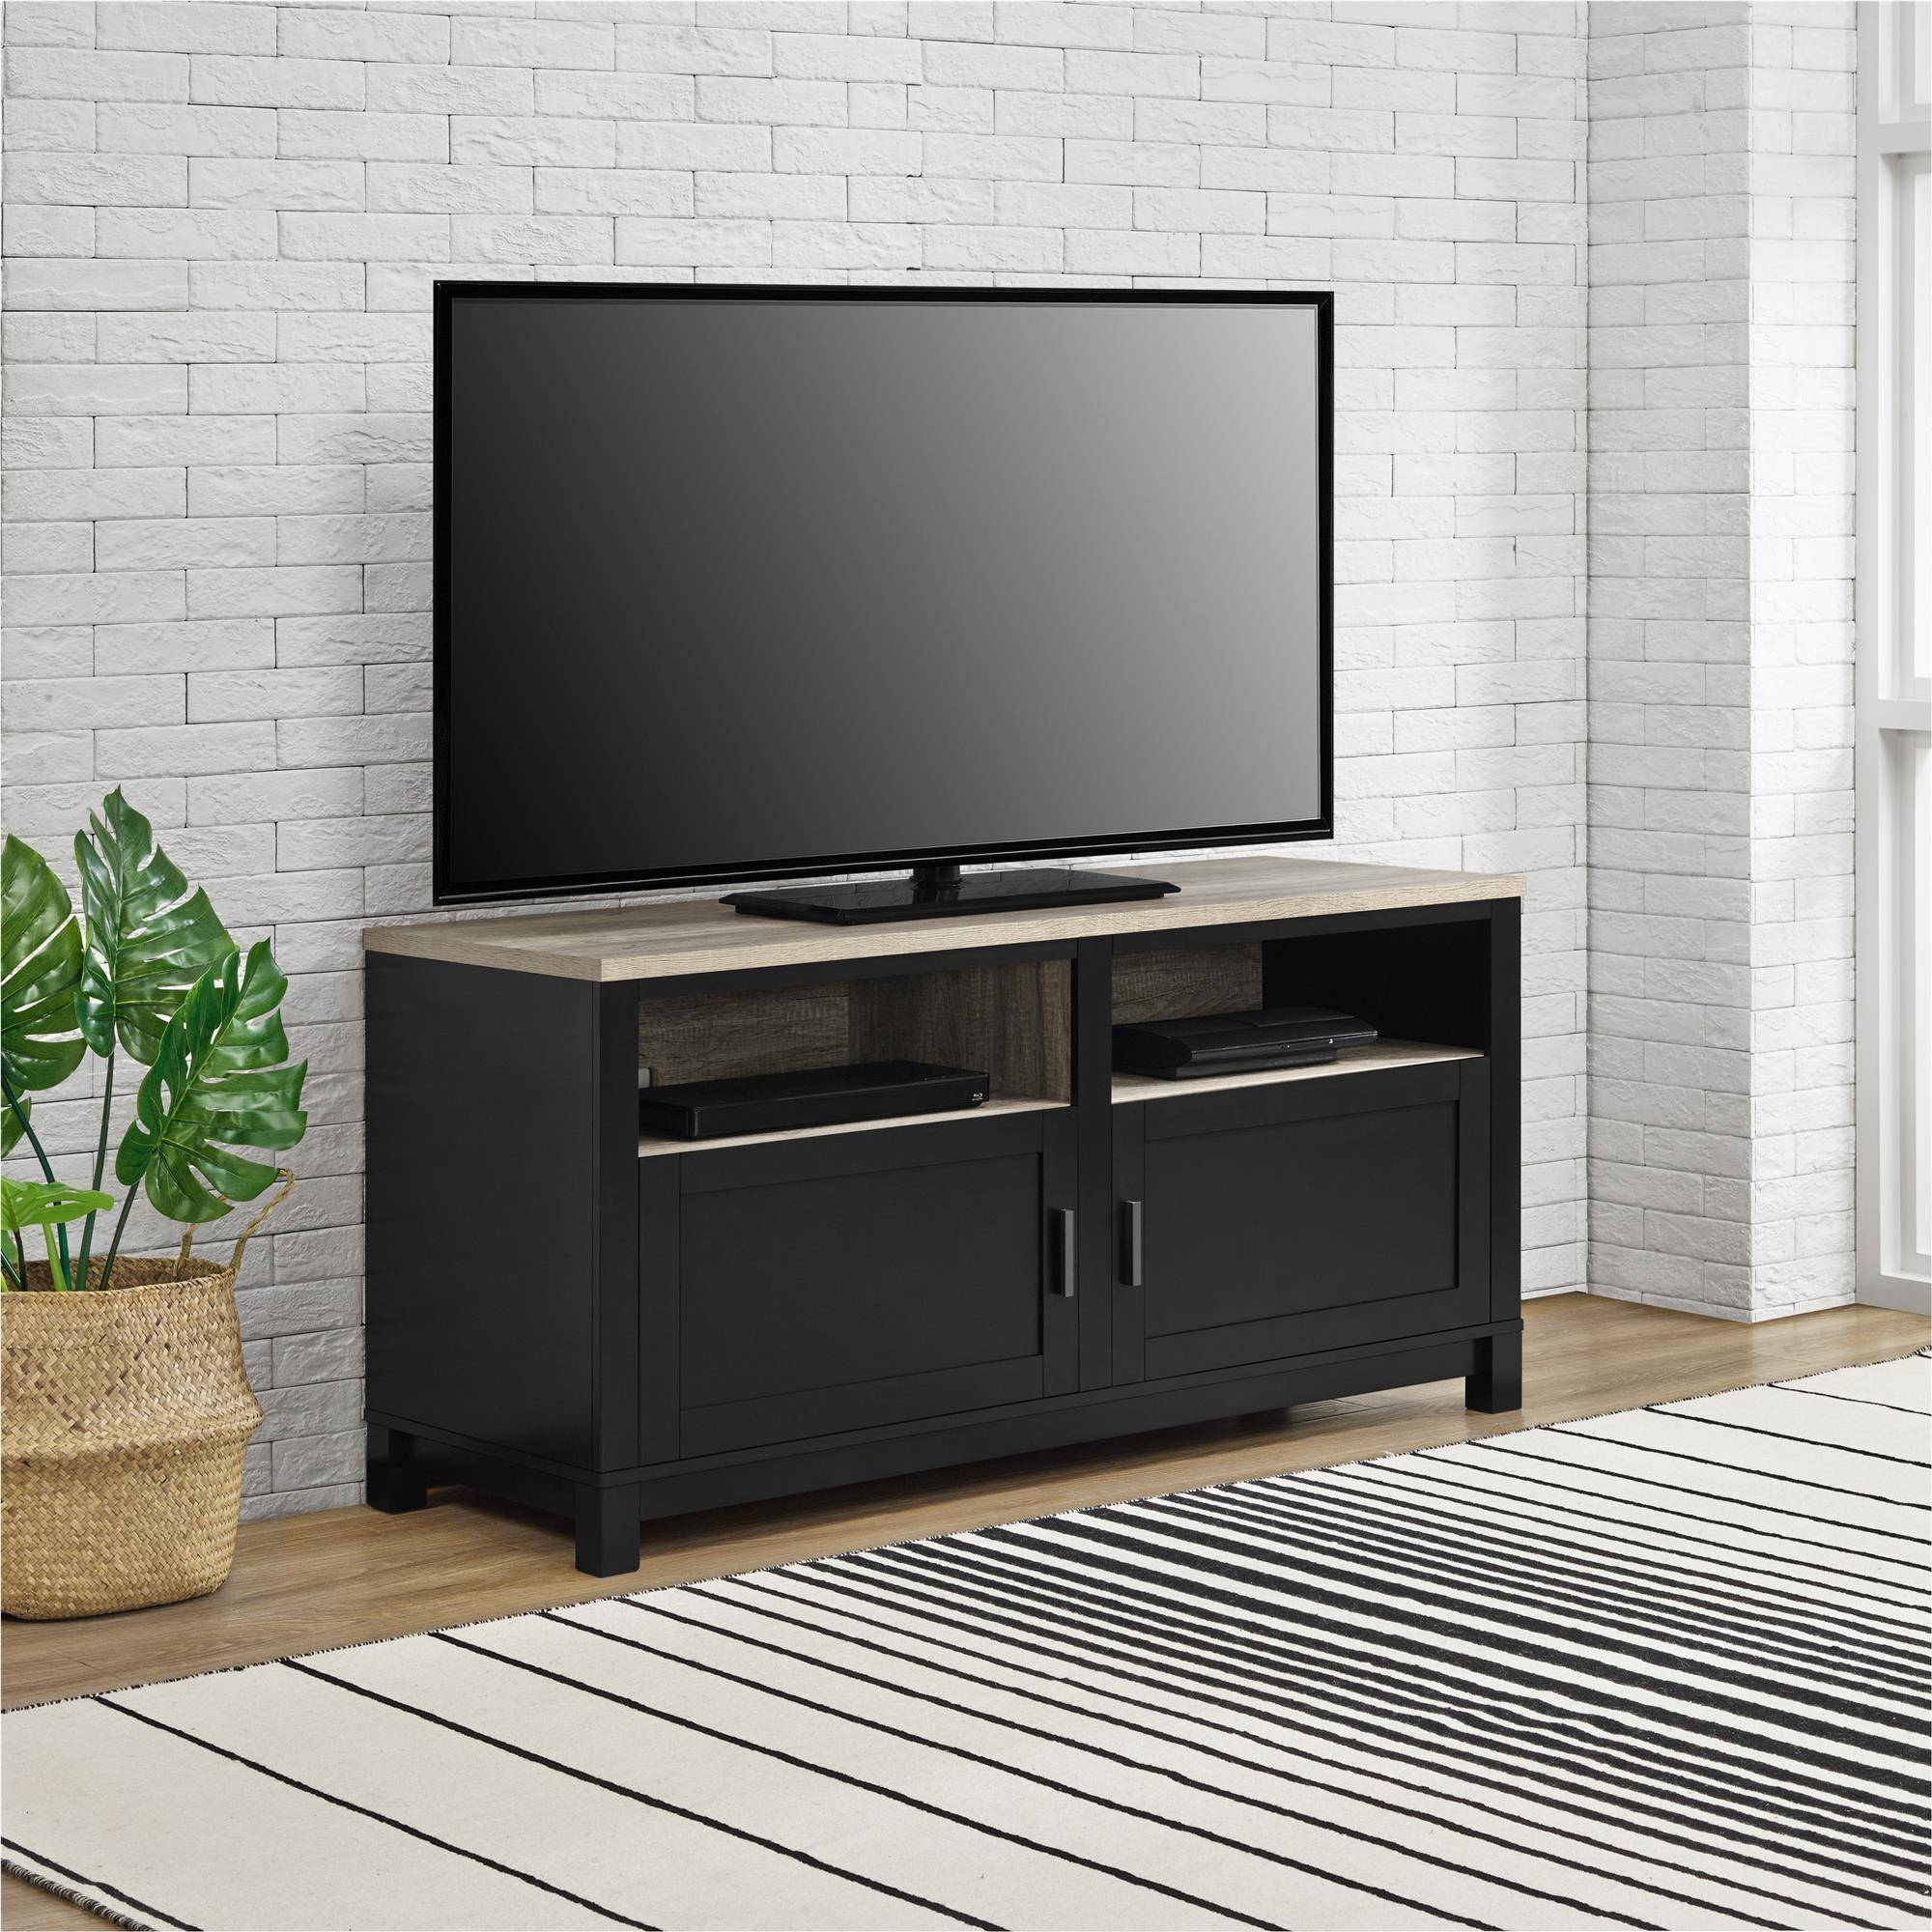 "Better Homes and Gardens Langley Bay TV Stand for TVs up to 60"" Wide, Multiple Colors"